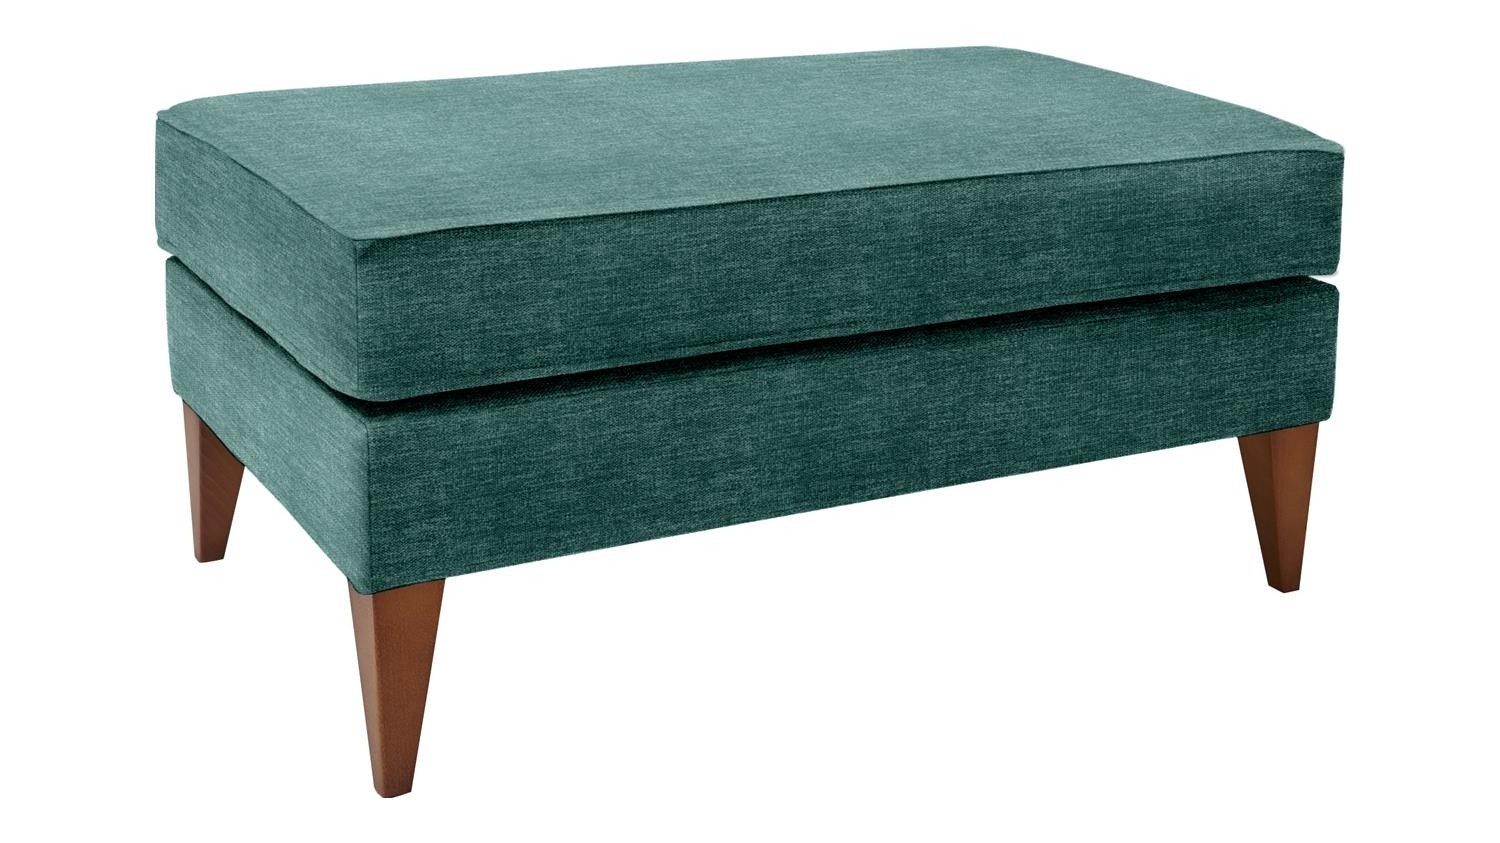 The Calne Footstool